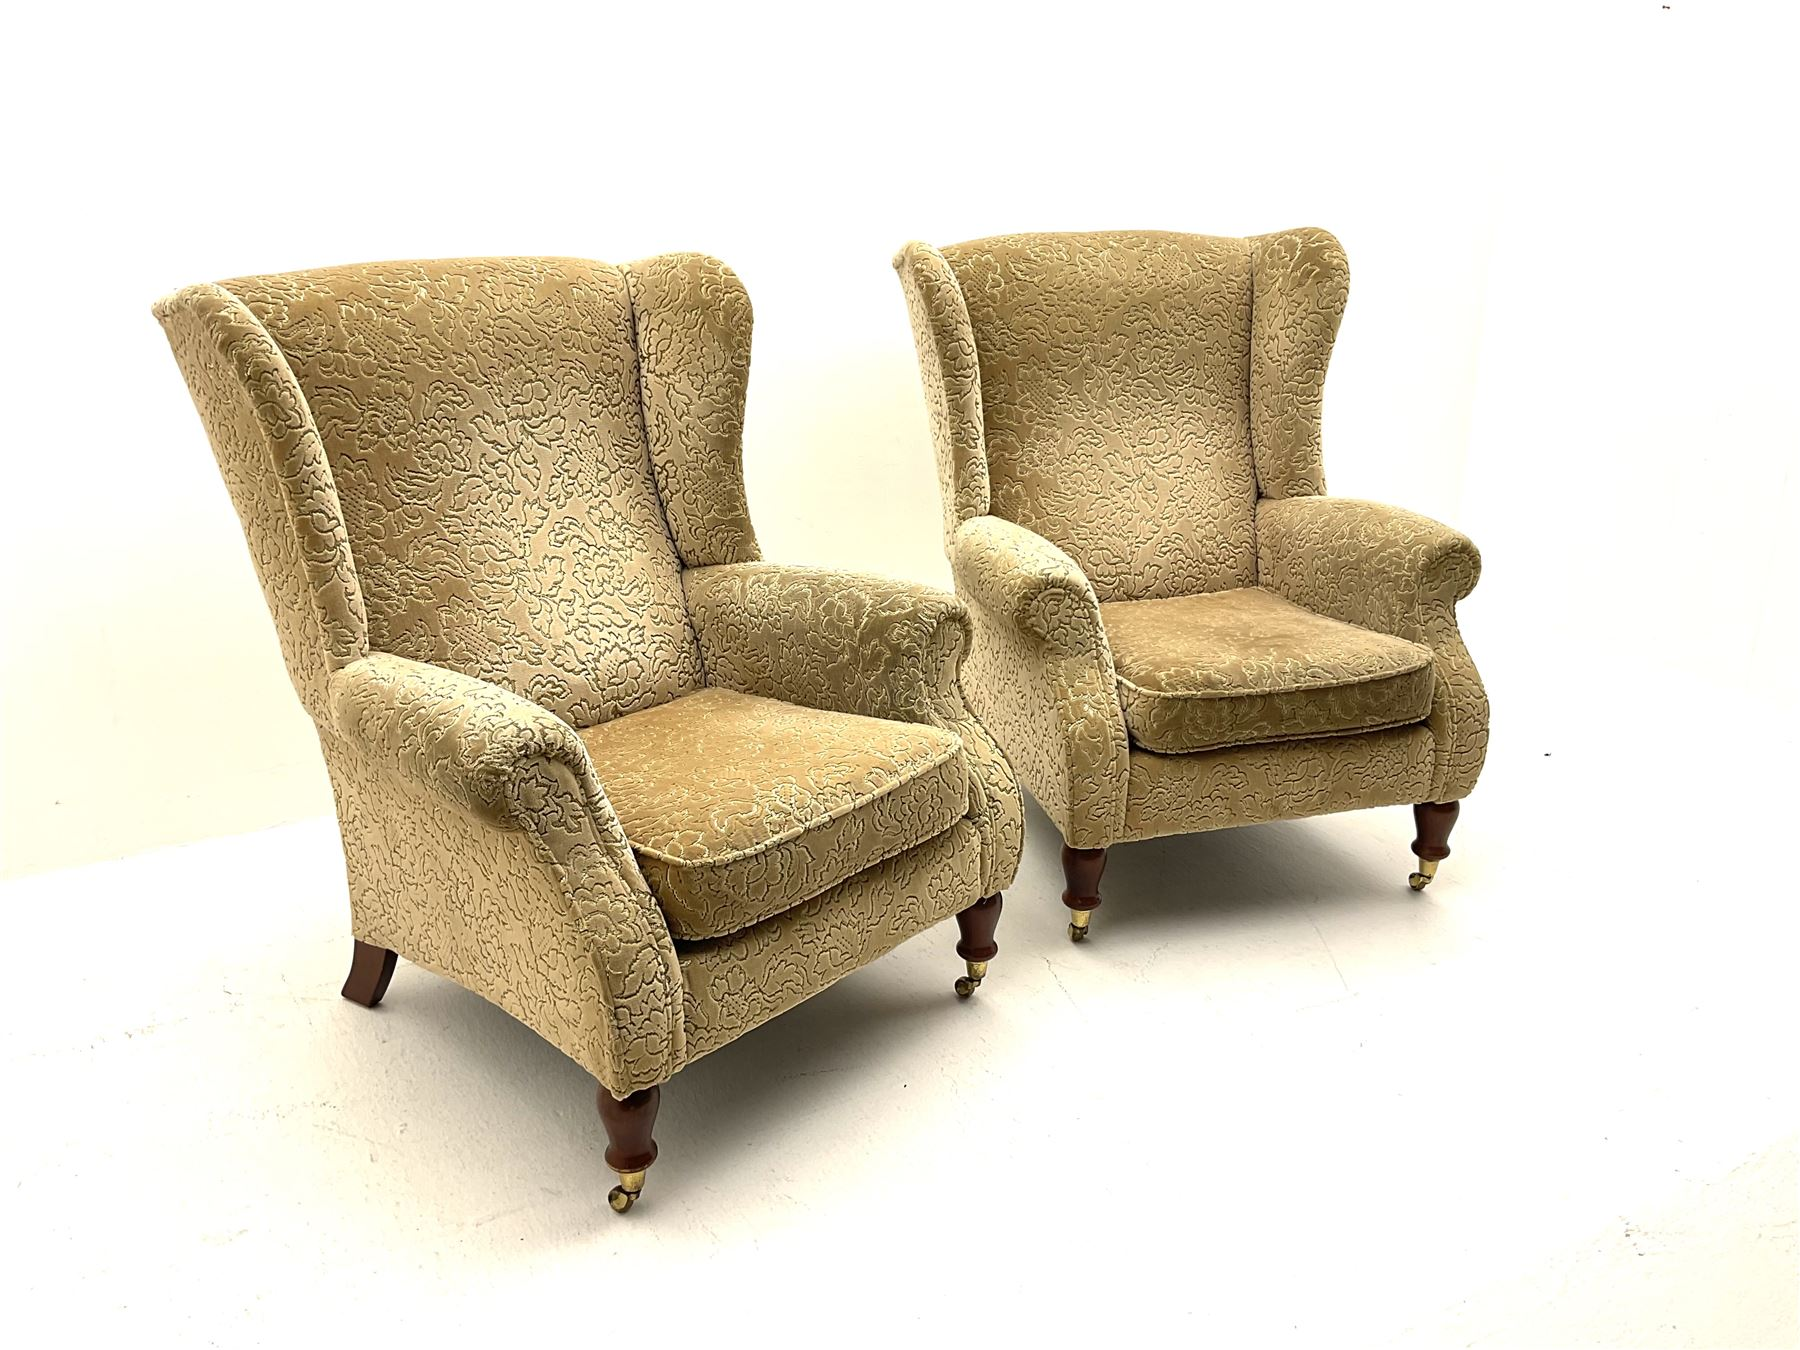 Pair of Parker Knoll armchairs - Image 2 of 2